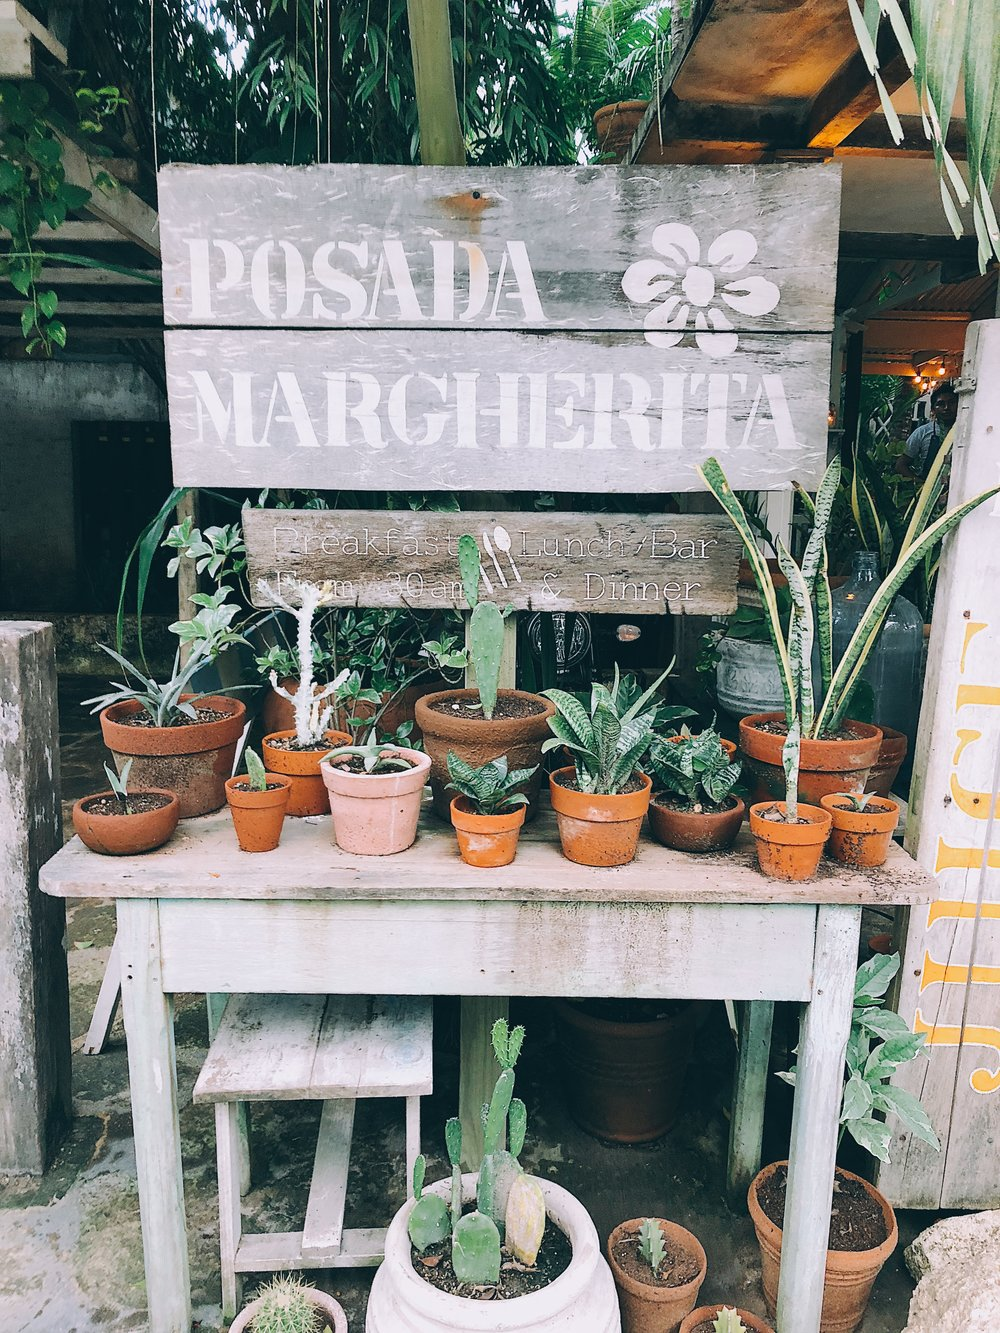 posada margherita // tulum, mexico